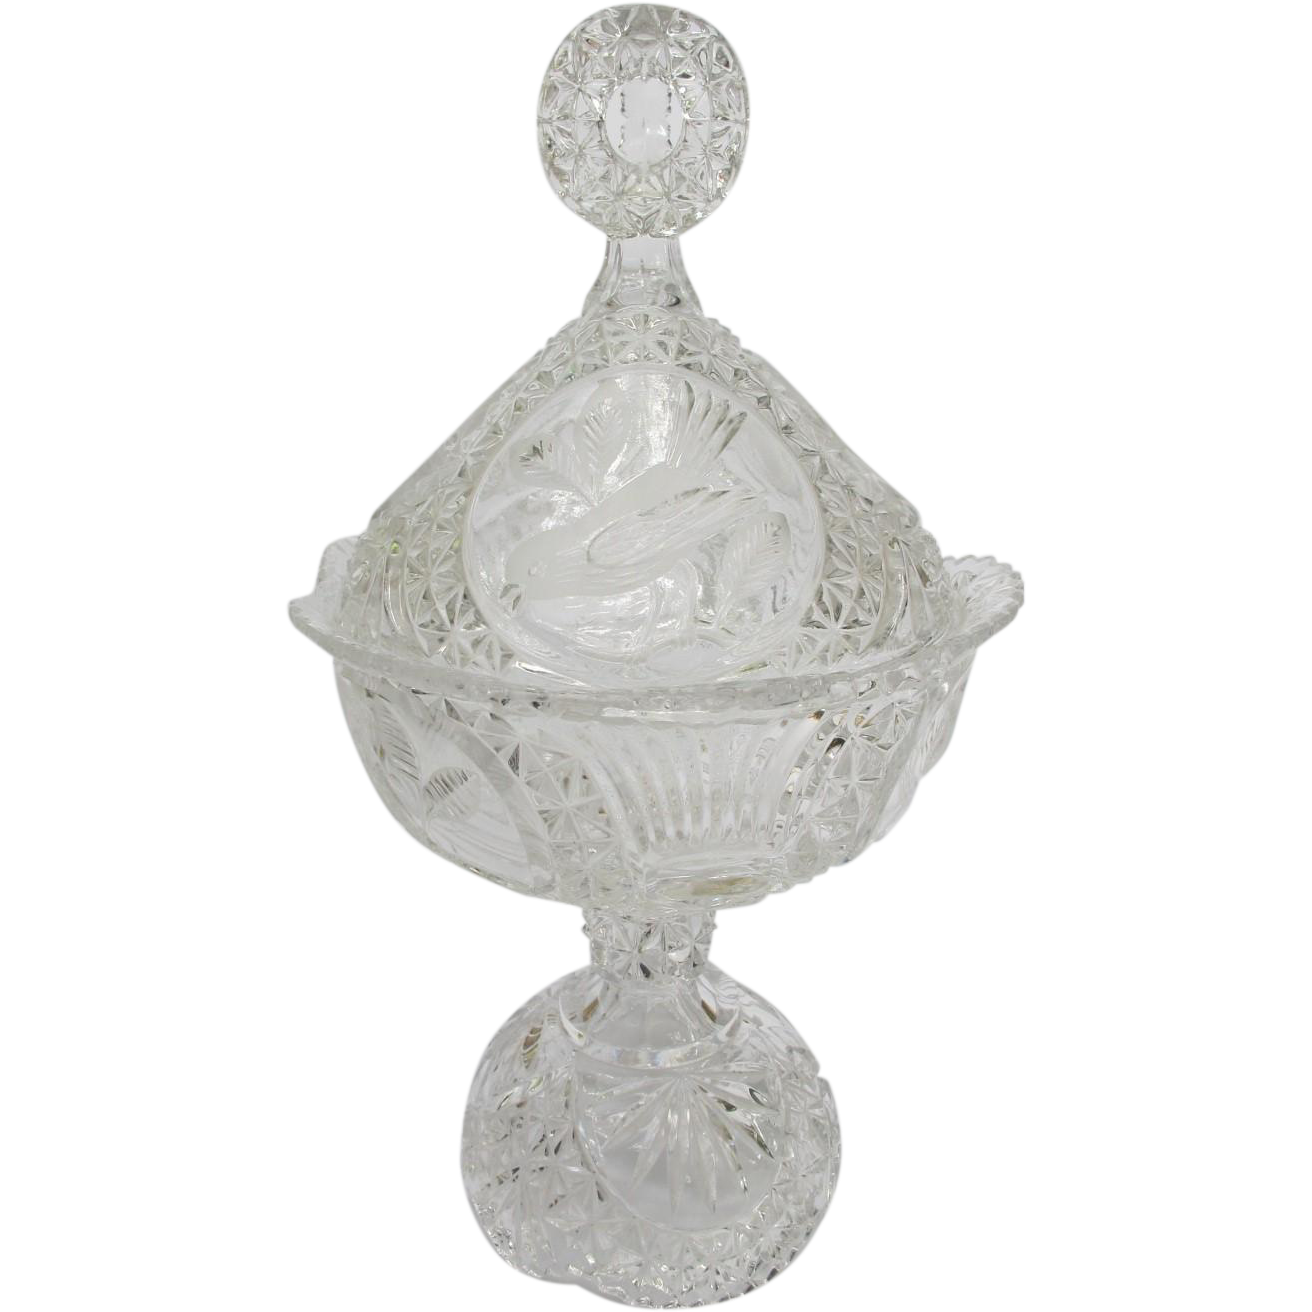 Hofabuer Crystal Bird Large Compote Candy Dish